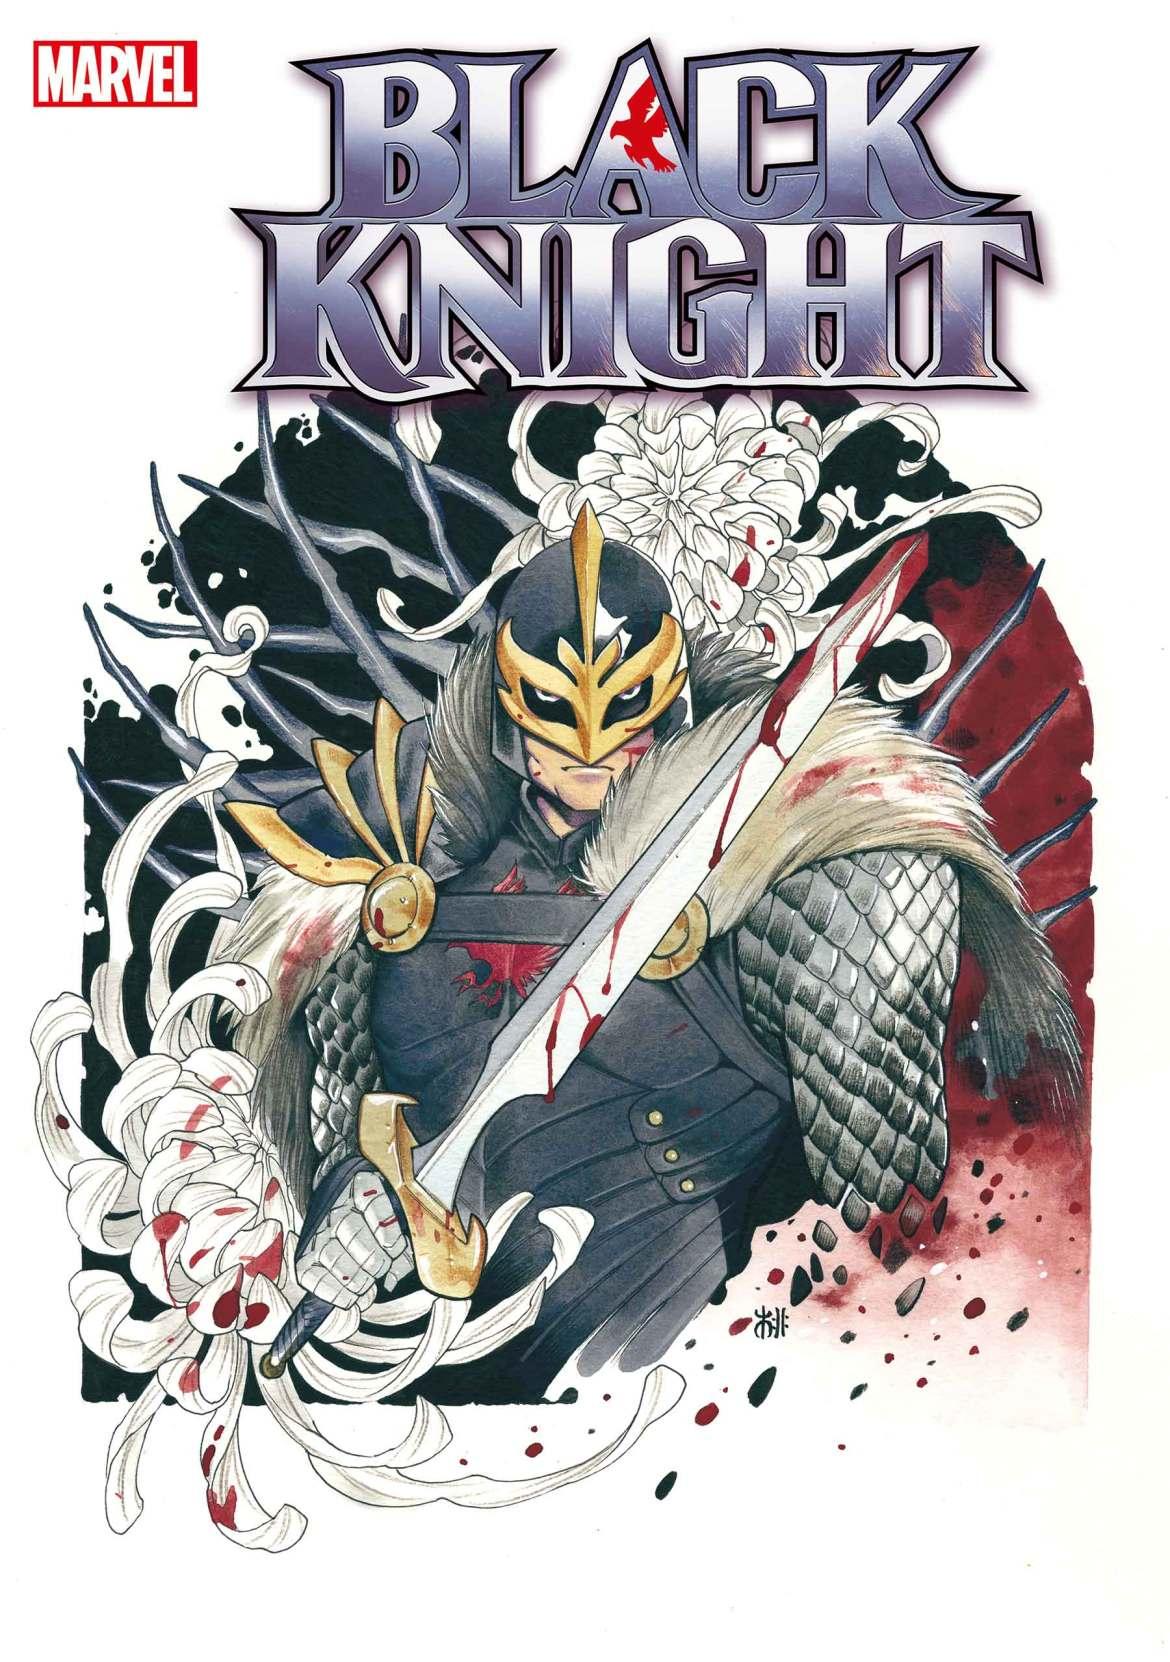 BLKKNGHT2021001_momoko Marvel Comics March 2021 Solicitations